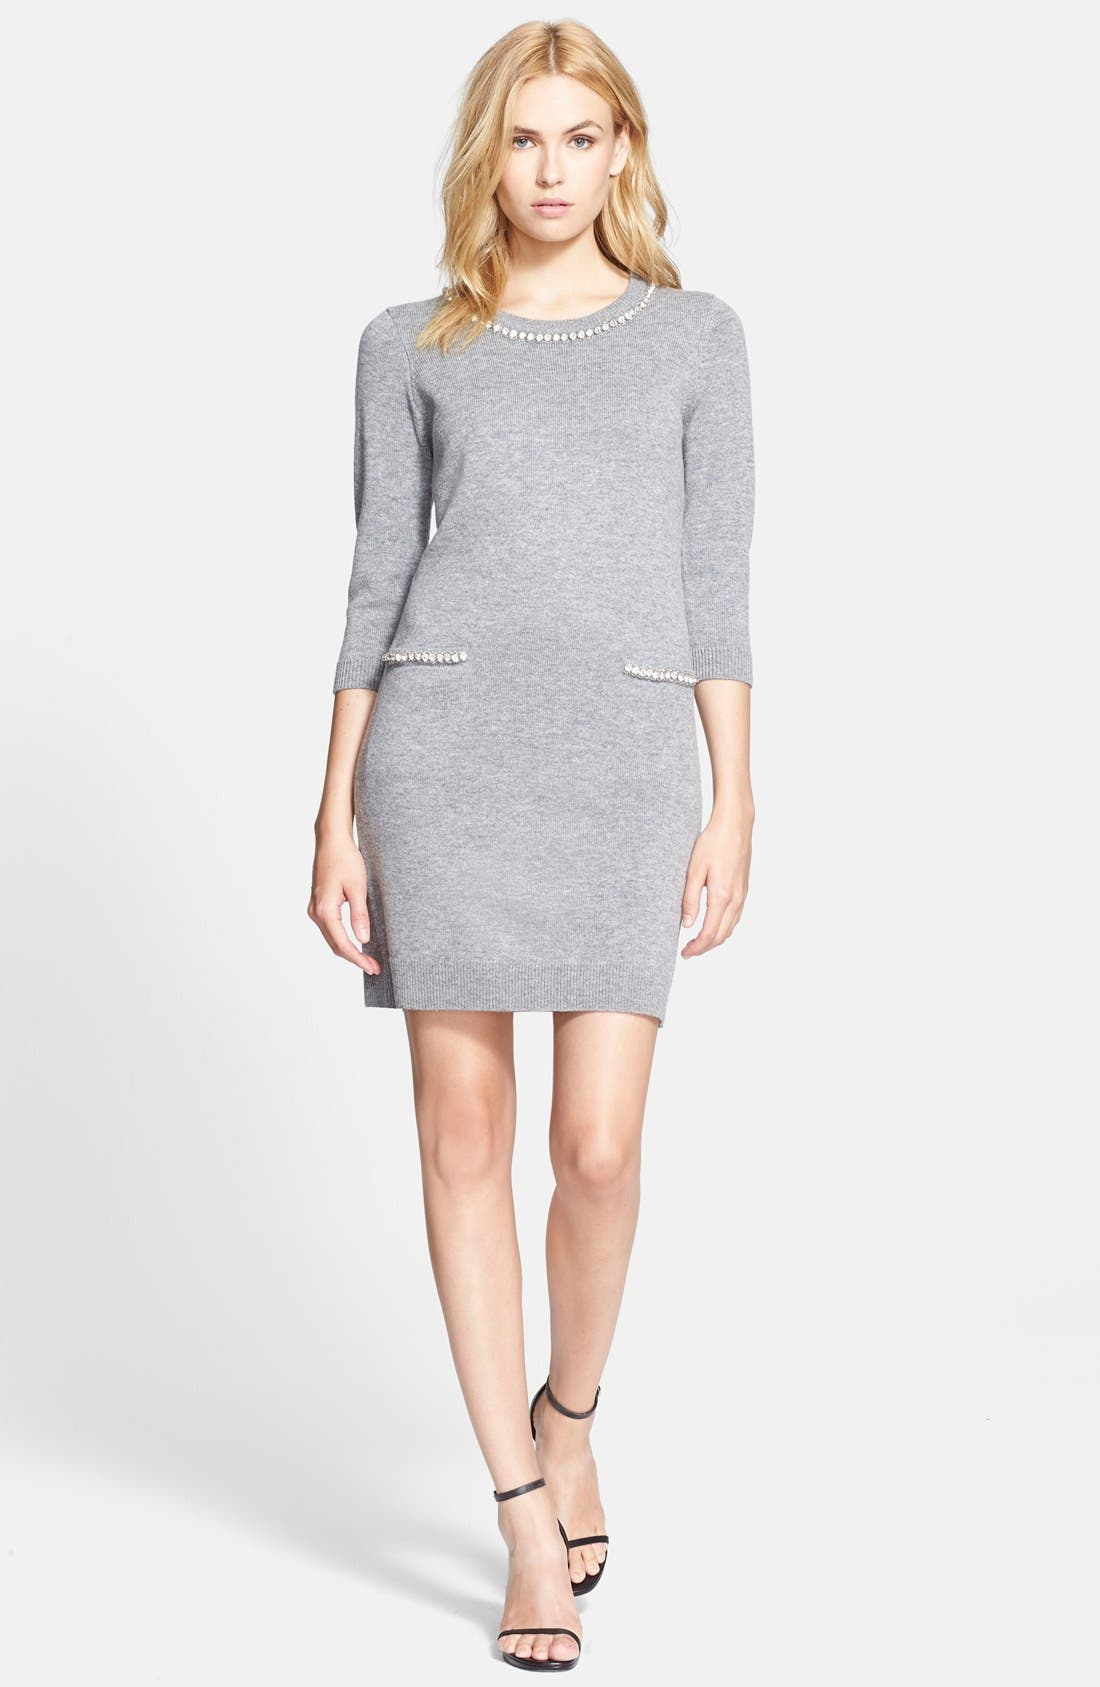 Main Image - Milly Embellished Trim Sweater Dress